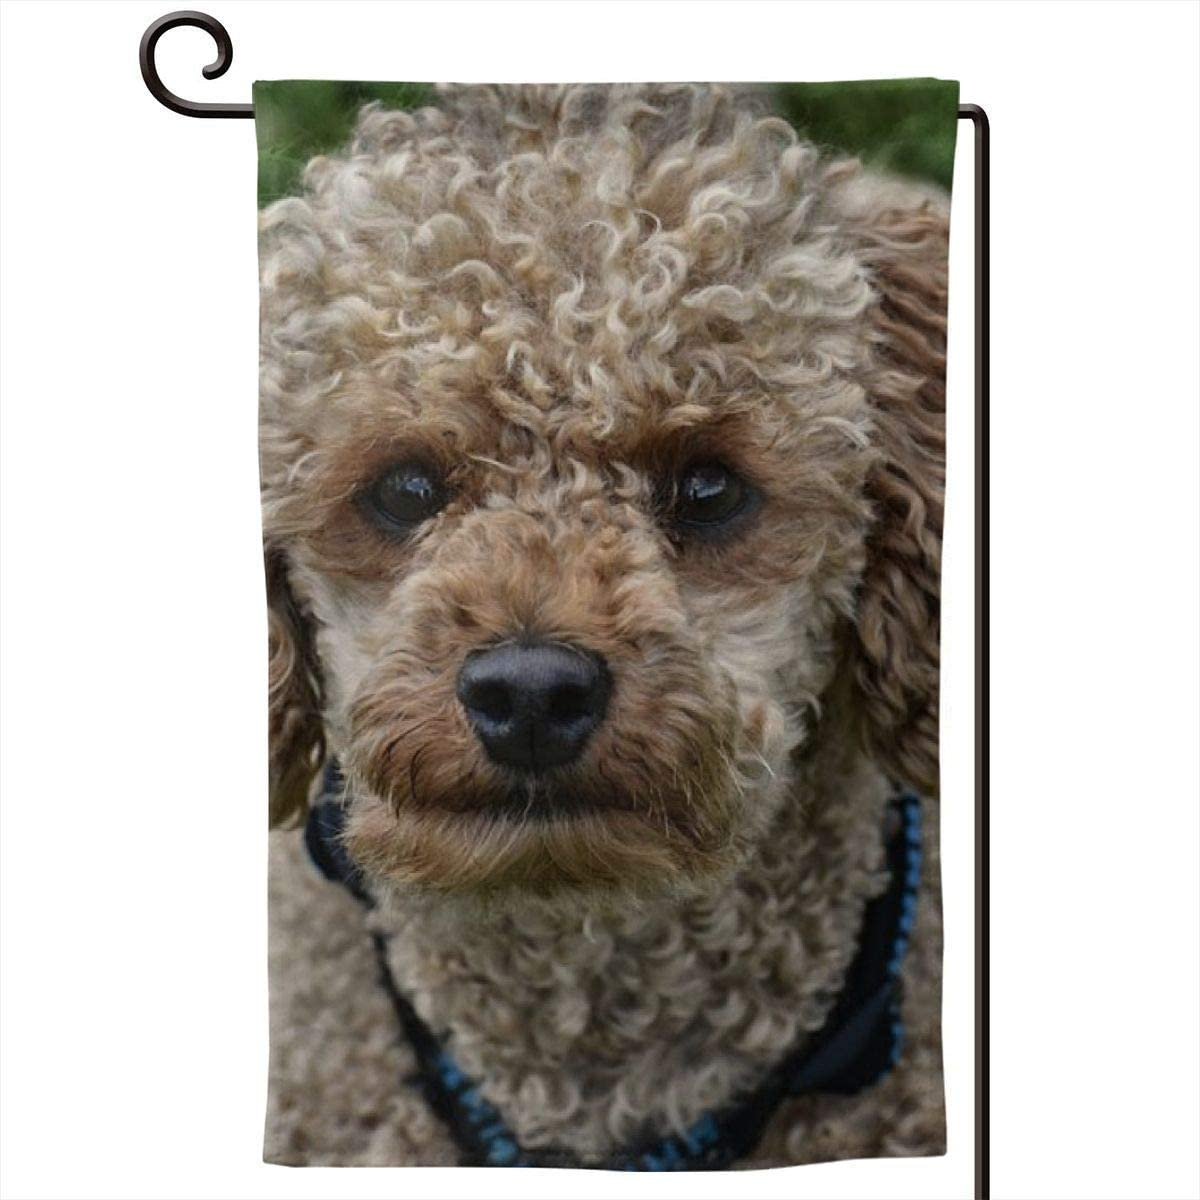 aimo ypu Cute Poodle Double Sided Home Garden Flag Welcome Small Garden Yard Flags,Durable Home Decorative Outdoor Decorative Flag for All Seasons & Holidays 12.5 X 18inch